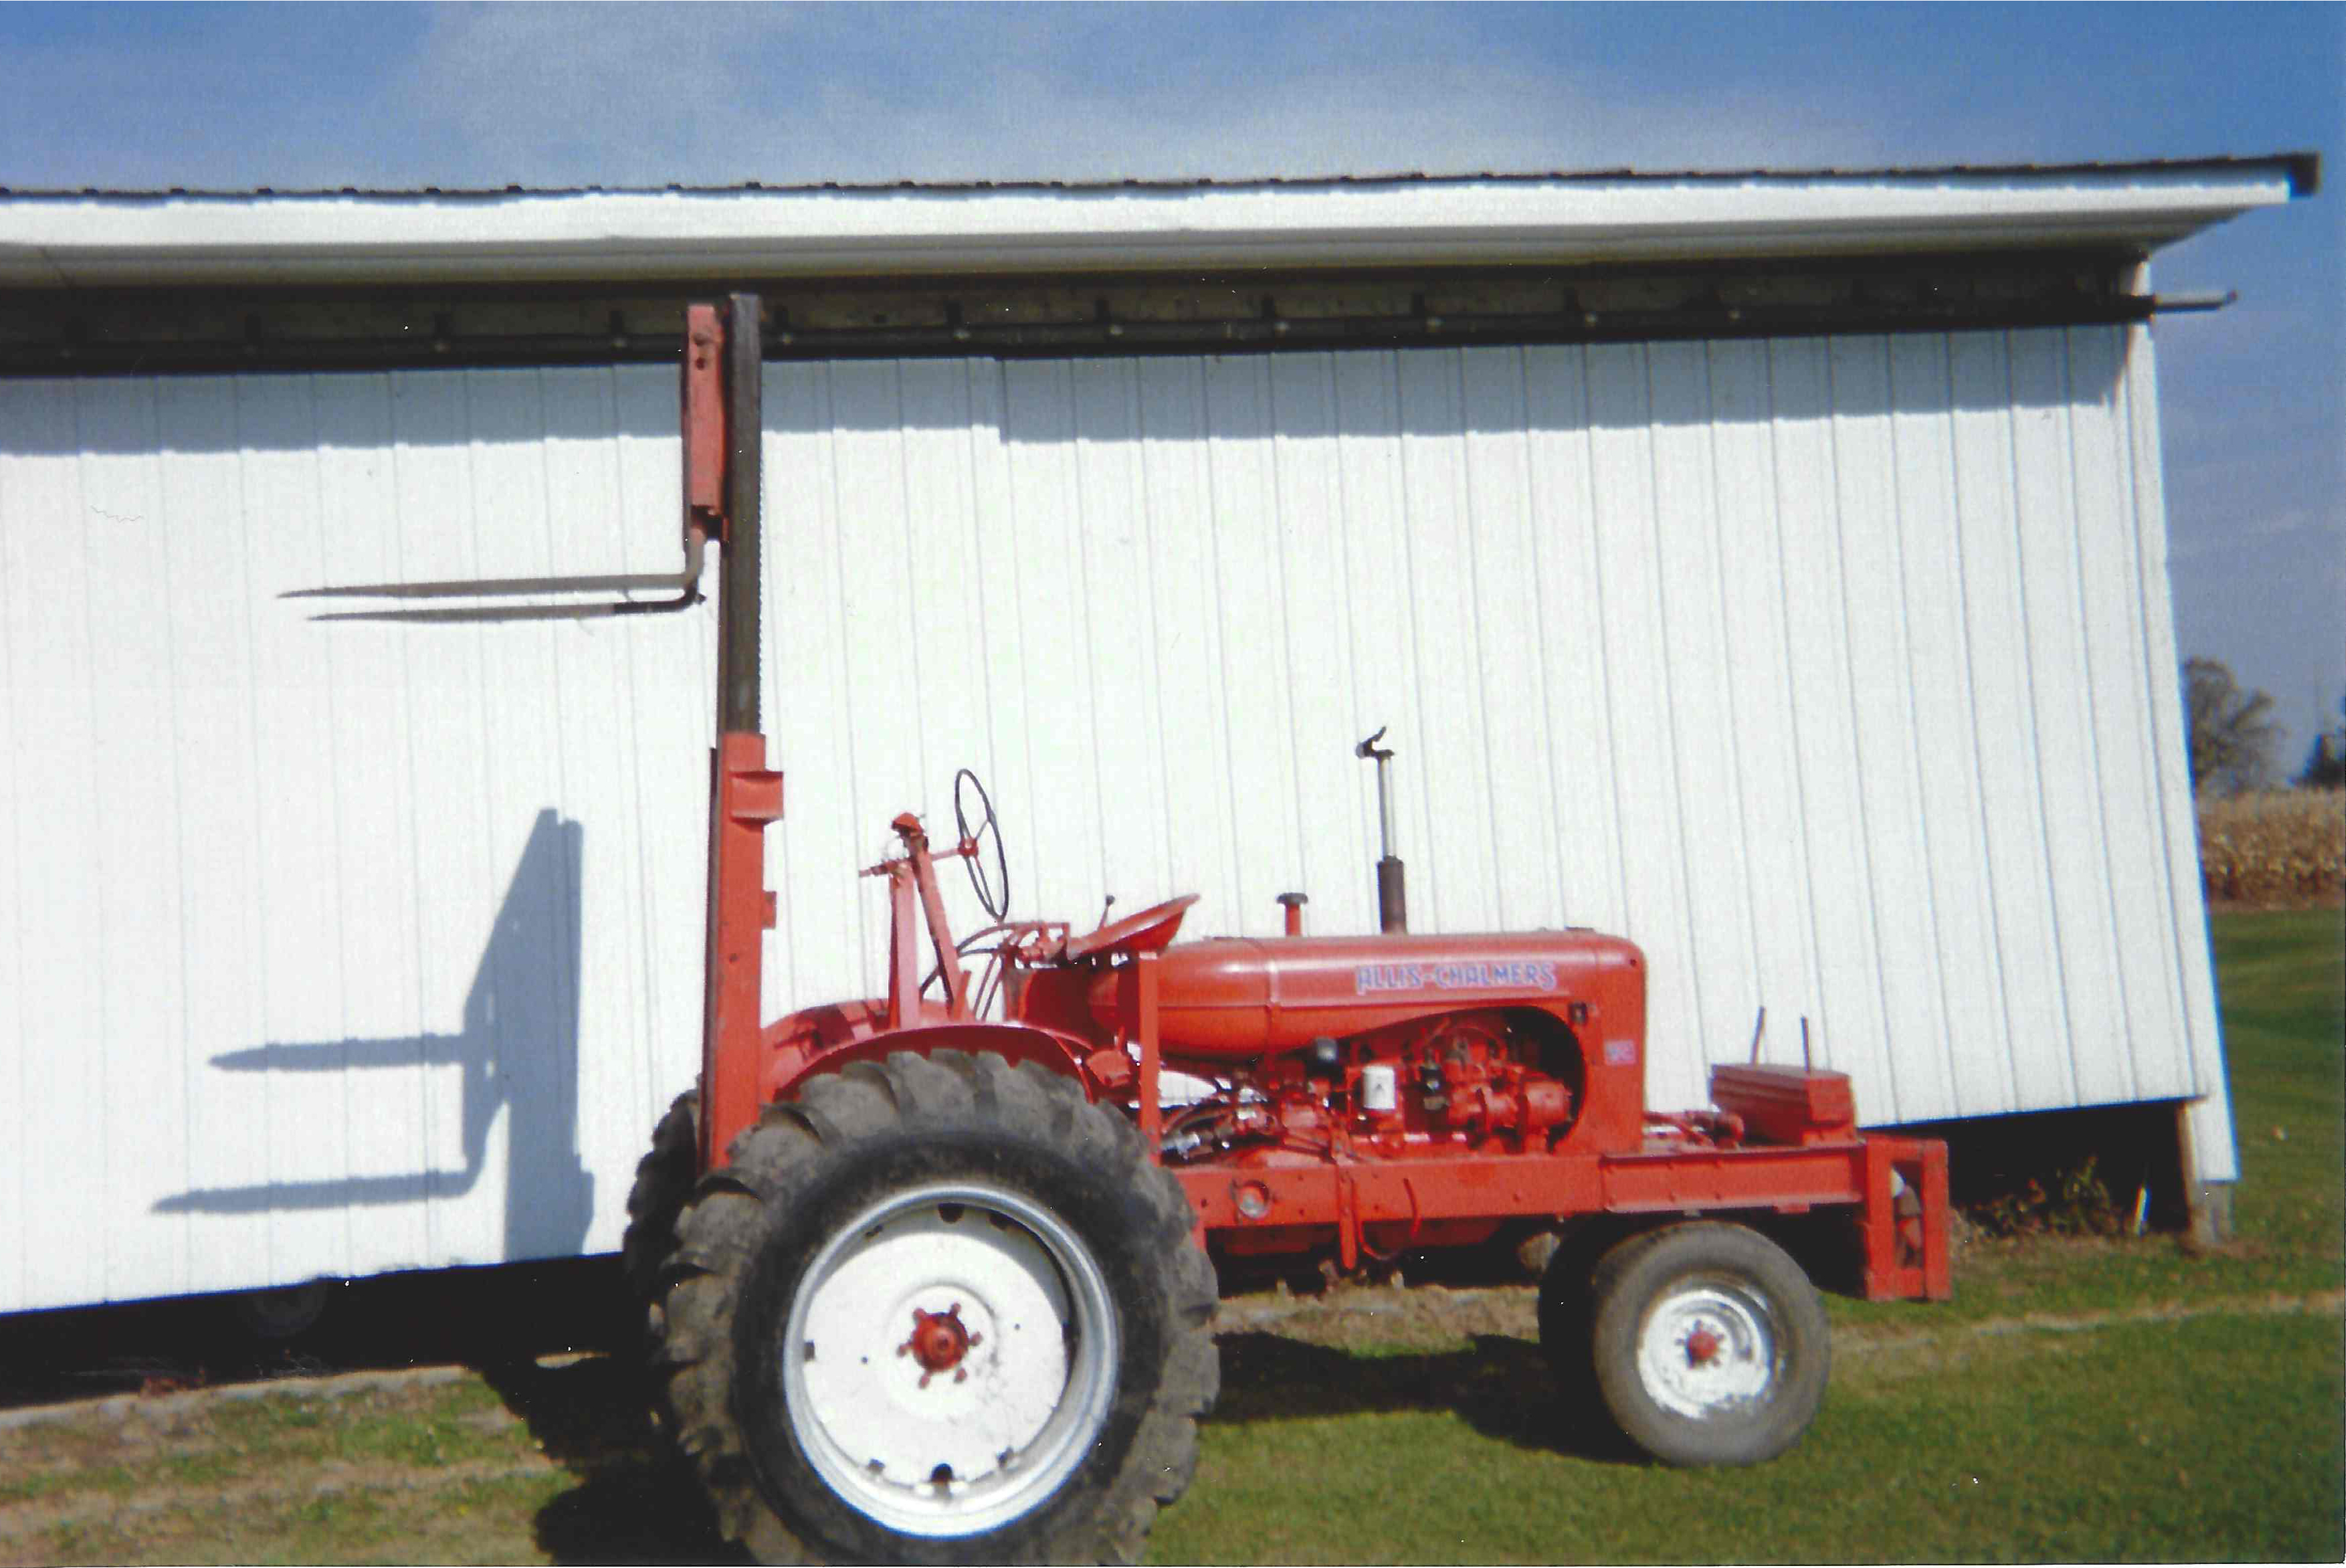 1948 TRACTOR and Forklift 2WD power steering good tires runs great excellent condition 5000